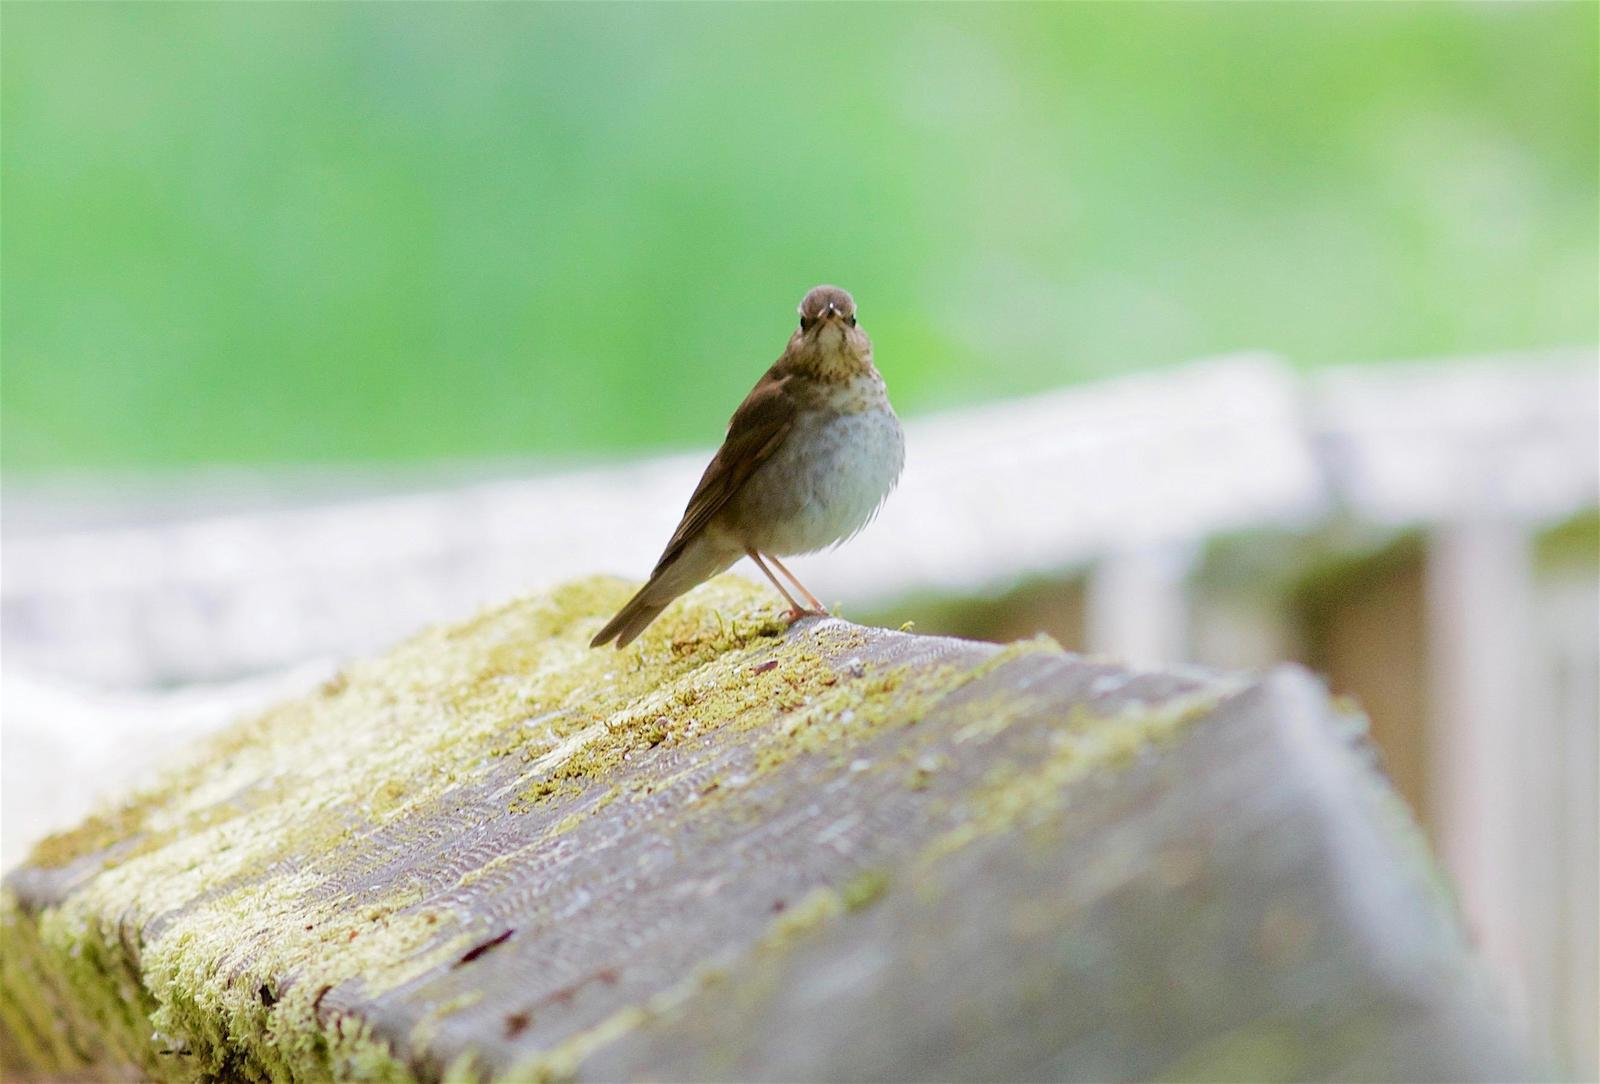 Swainson's Thrush Photo by Kathryn Keith